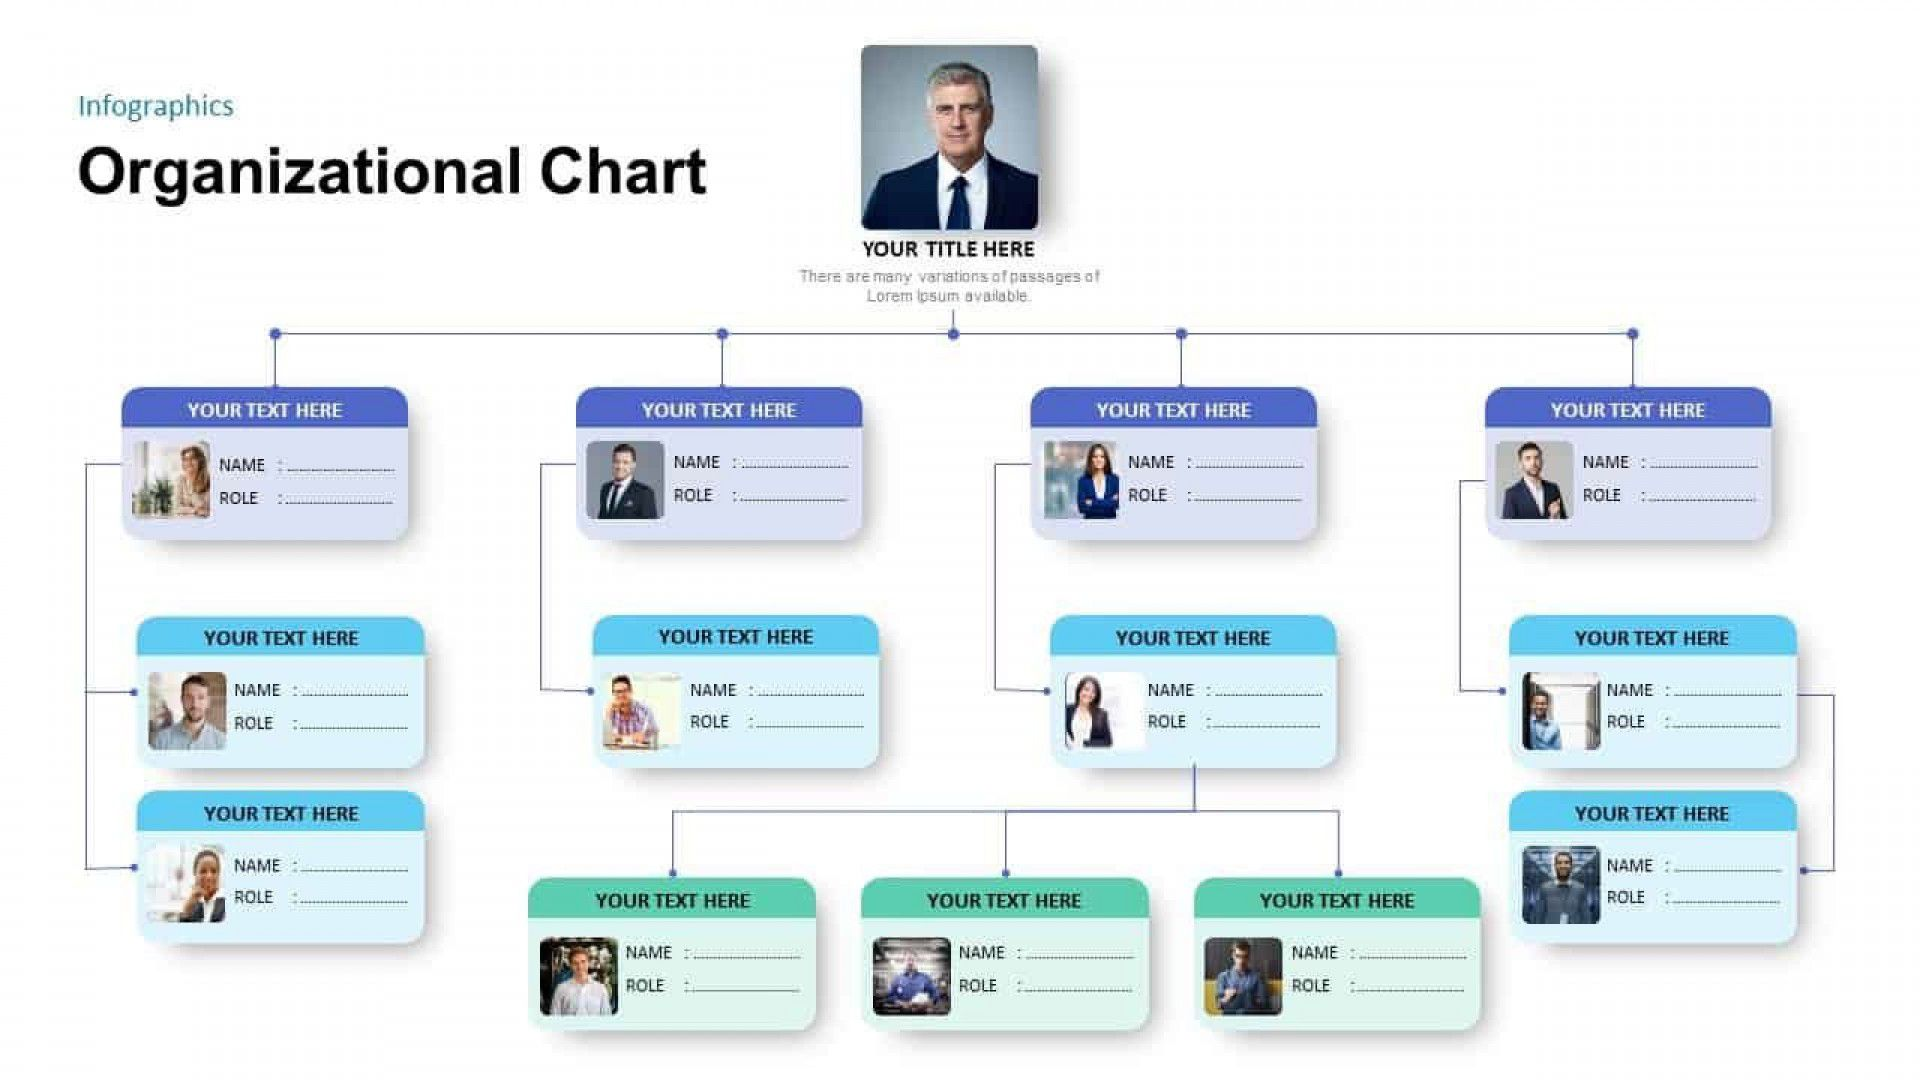 001 Stirring Microsoft Office Org Chart Template High Def  Templates M Organization OrganizationalFull